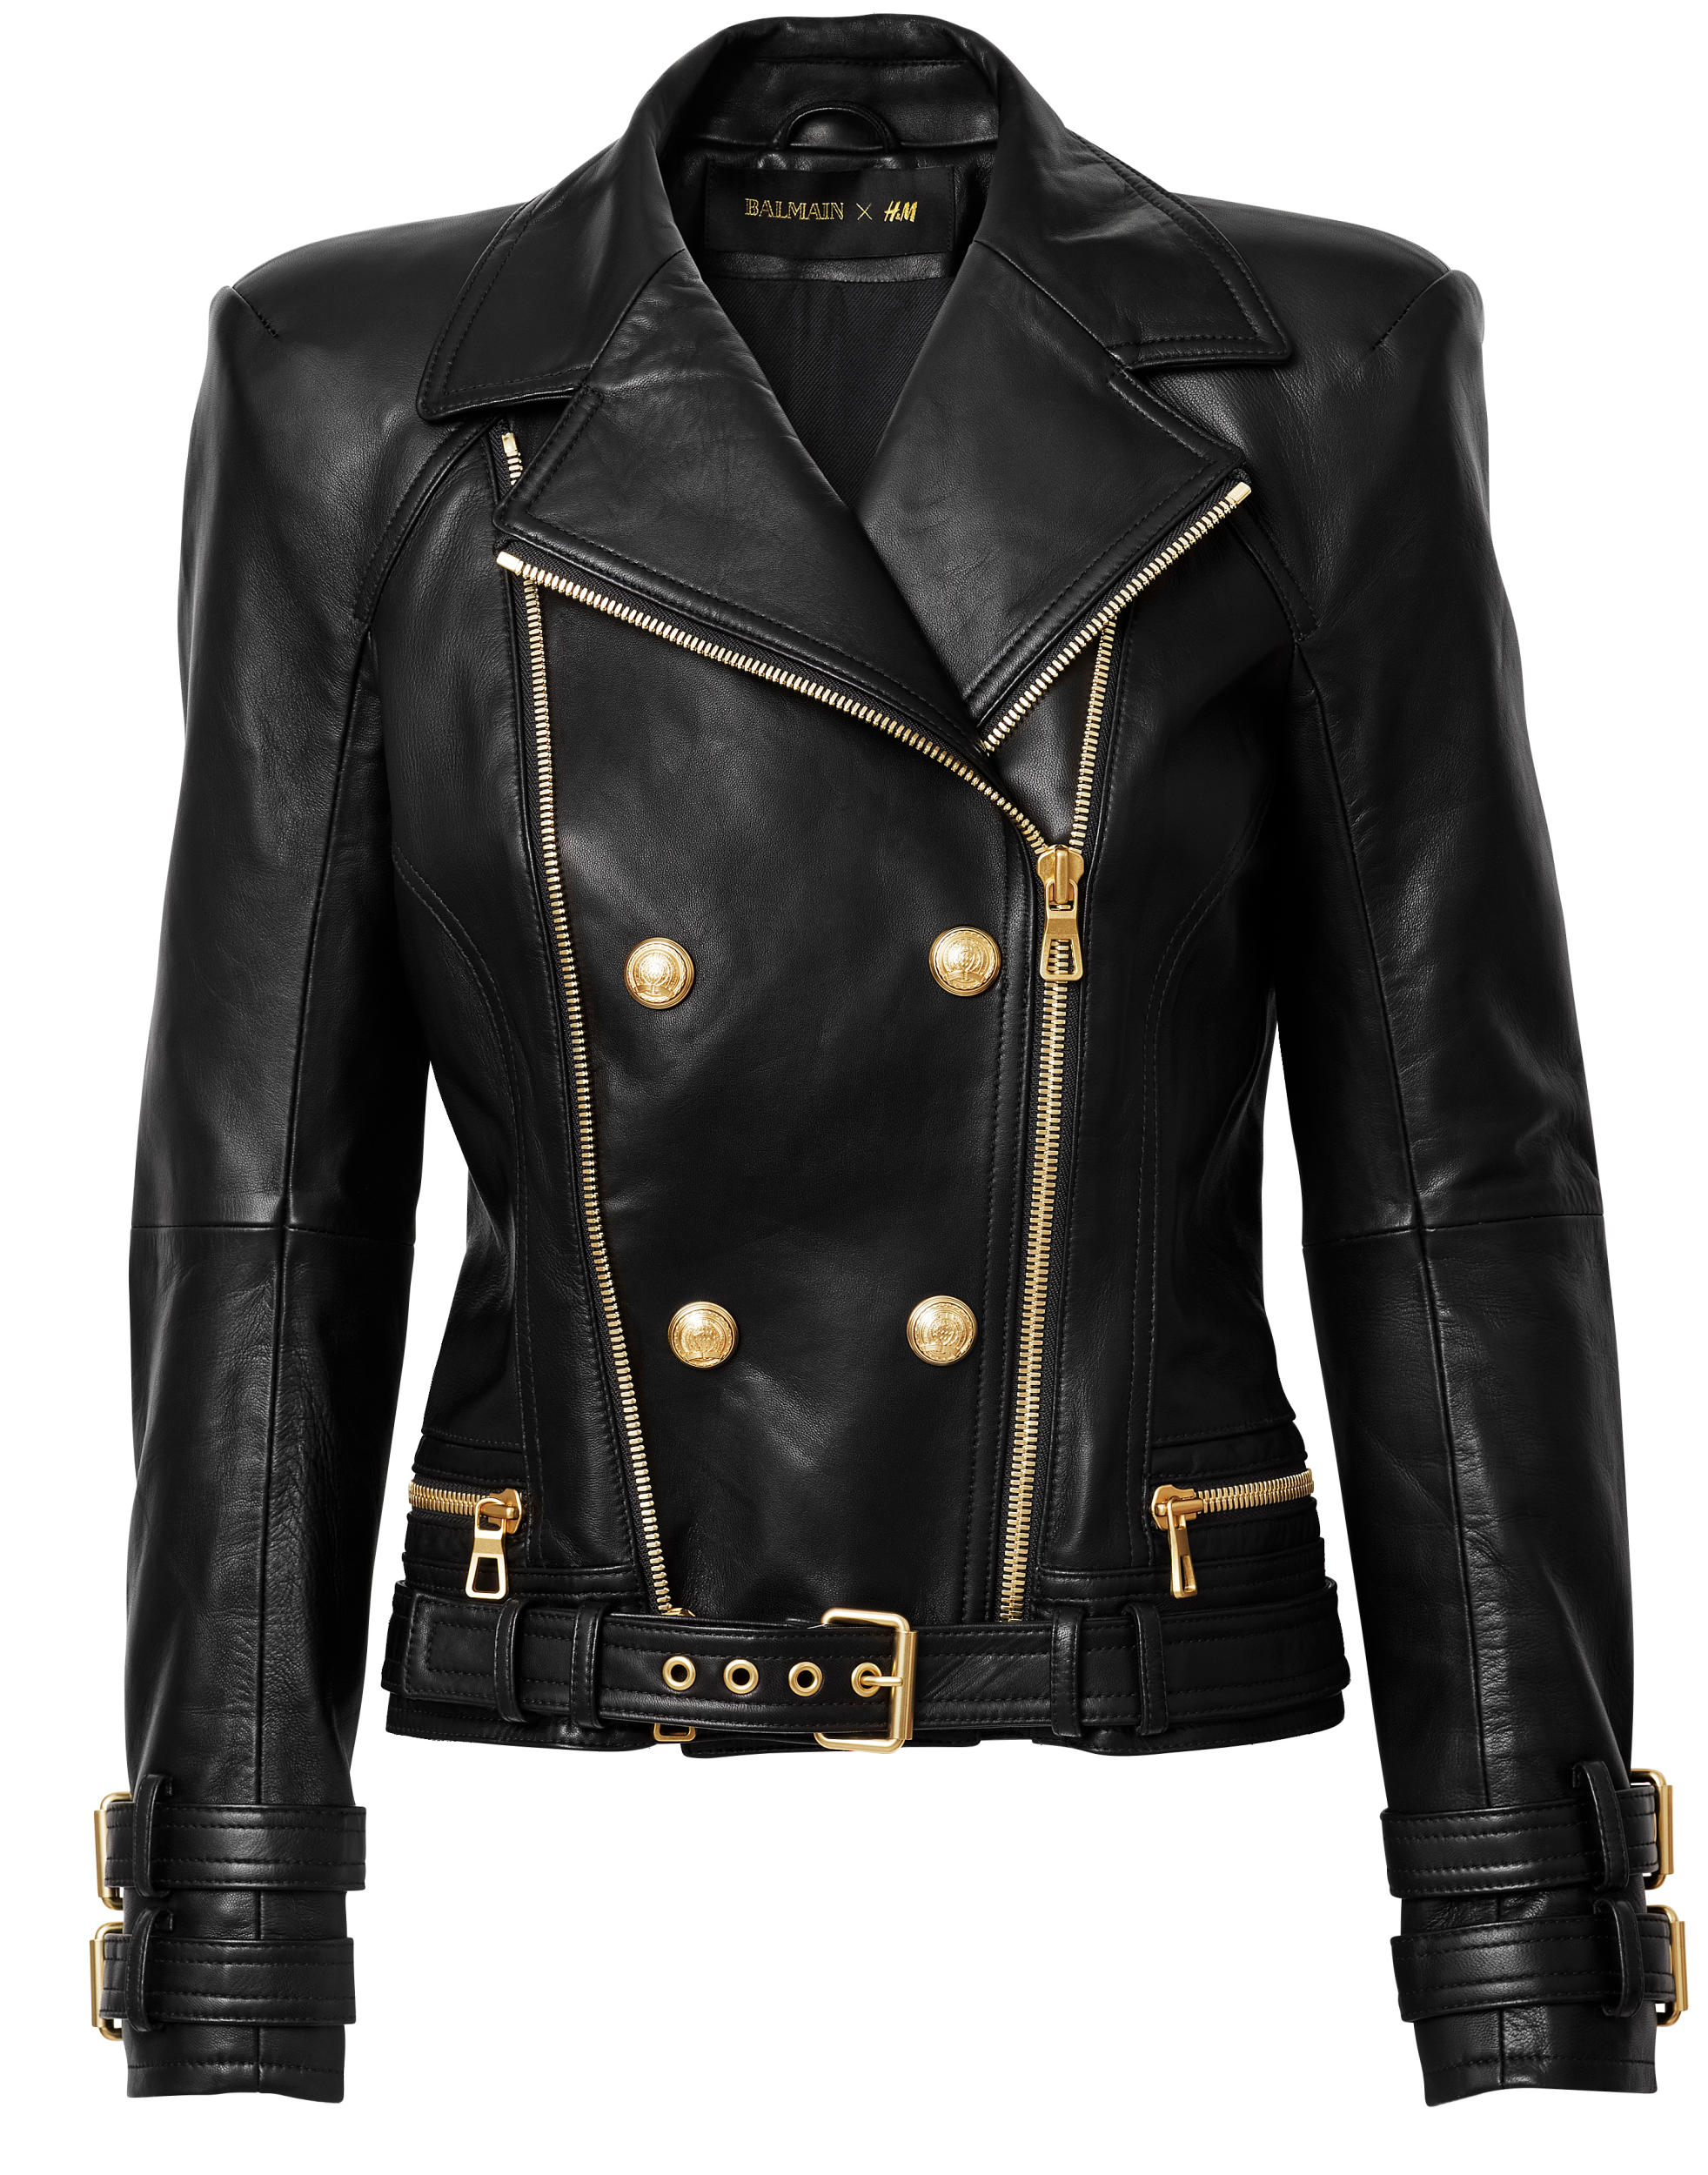 Buy ALEXANDER WANG X H & M leather jacket online from HEWI Street: the social shopping network for the fashion community to buy, sell and swap items from high-end high street brands.